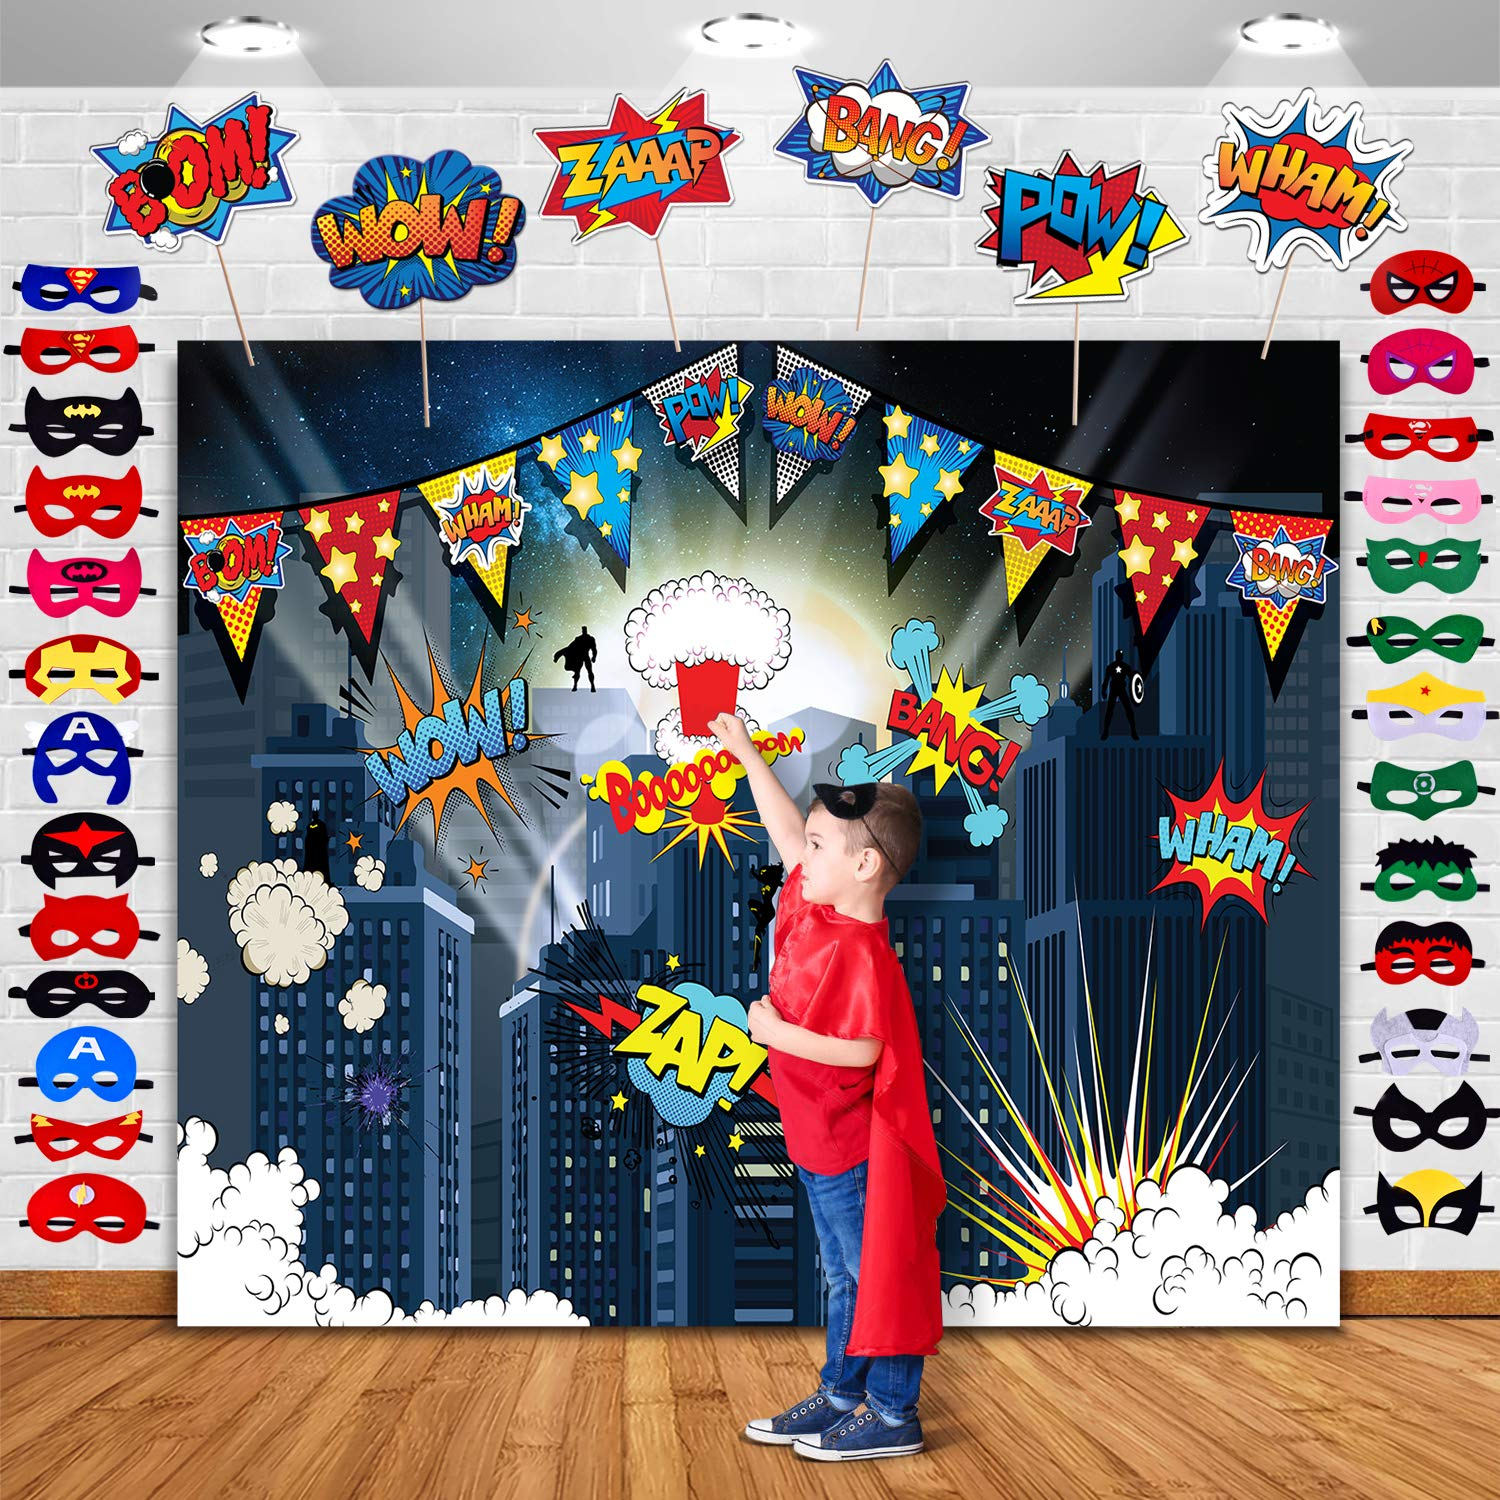 TMCCE Superhero Cityscape Photography Backdrop and Superhero Party Backdrop Supplies,27 Superhero Masks 6 Superhero Photo Booth Props for Superhero Birthday Party Decorations for Kids by TMCCE